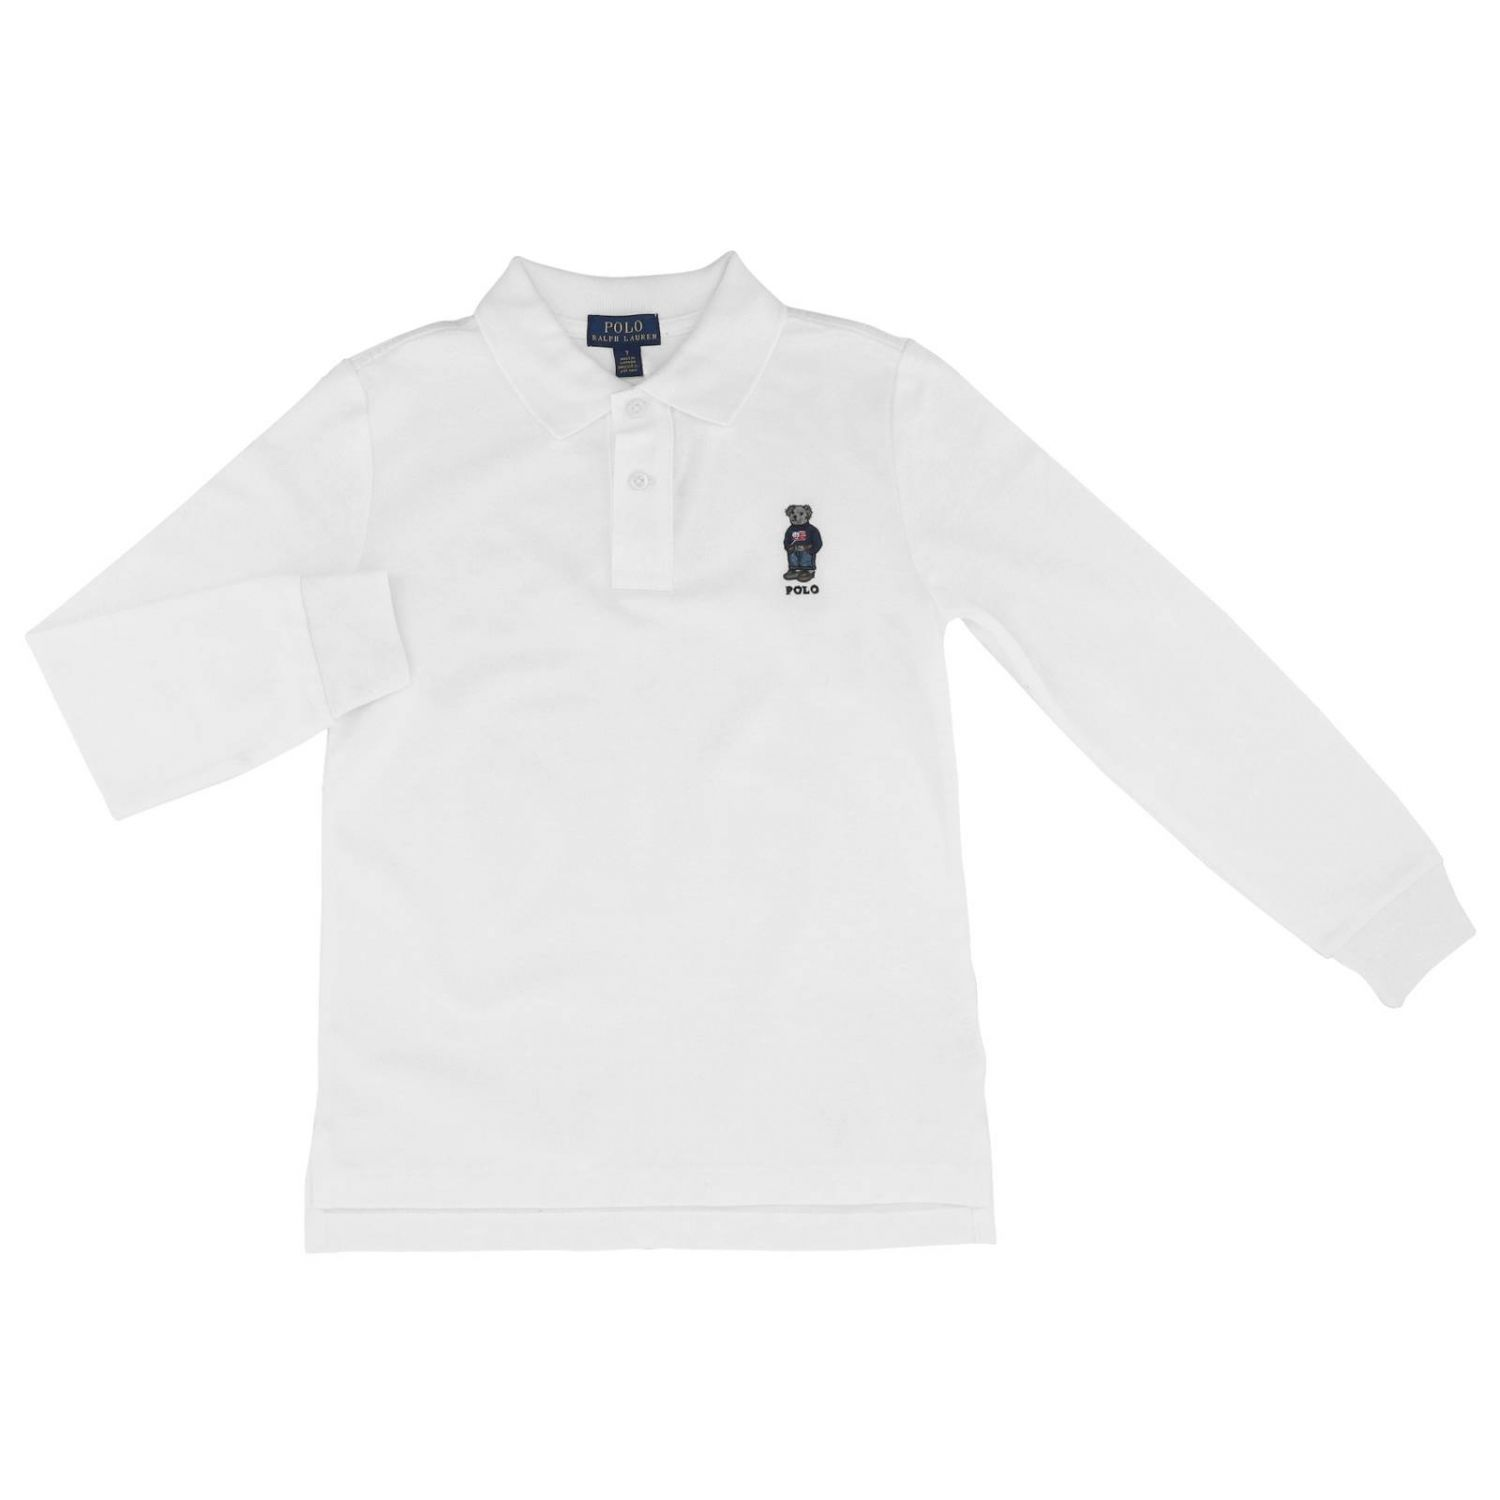 Sweater Sweater Kids Polo Ralph Lauren Toddler